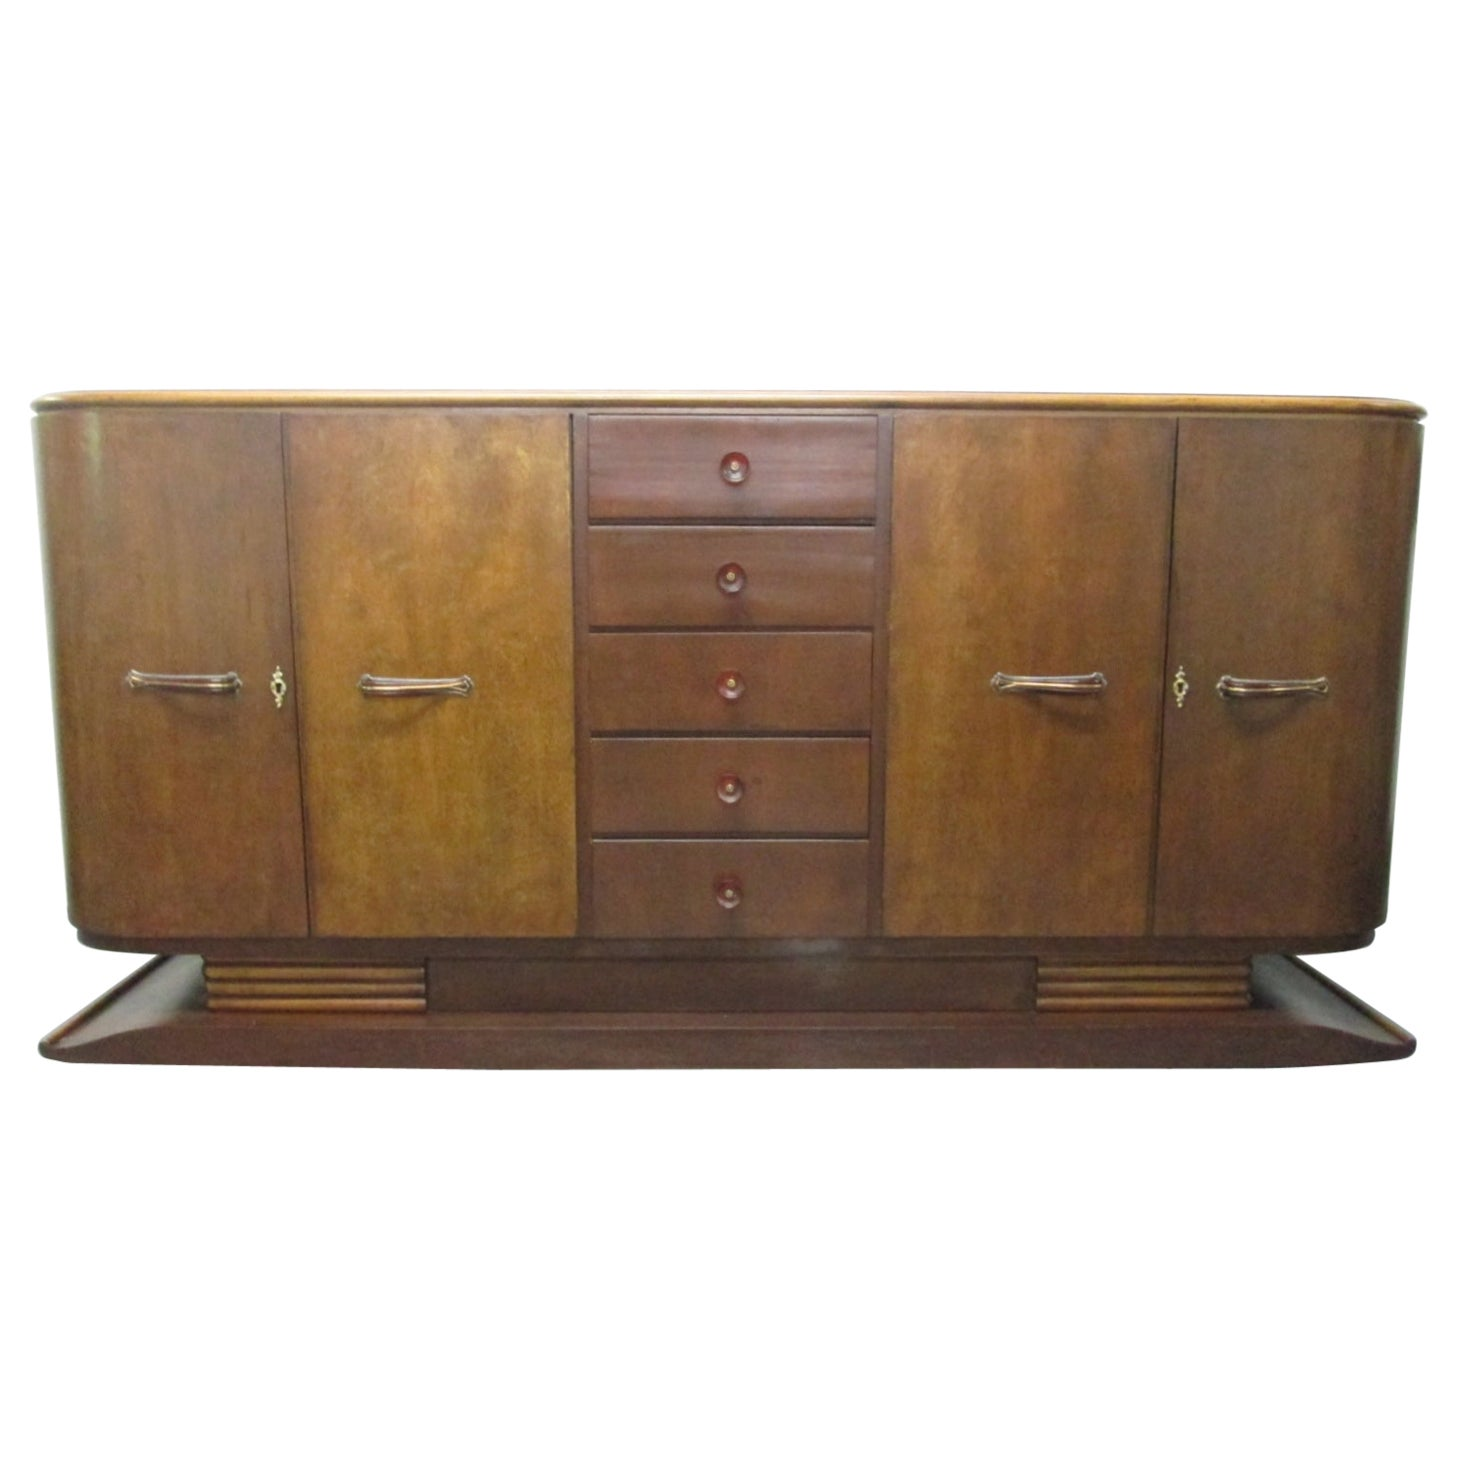 French Art Deco Sideboard or Buffet